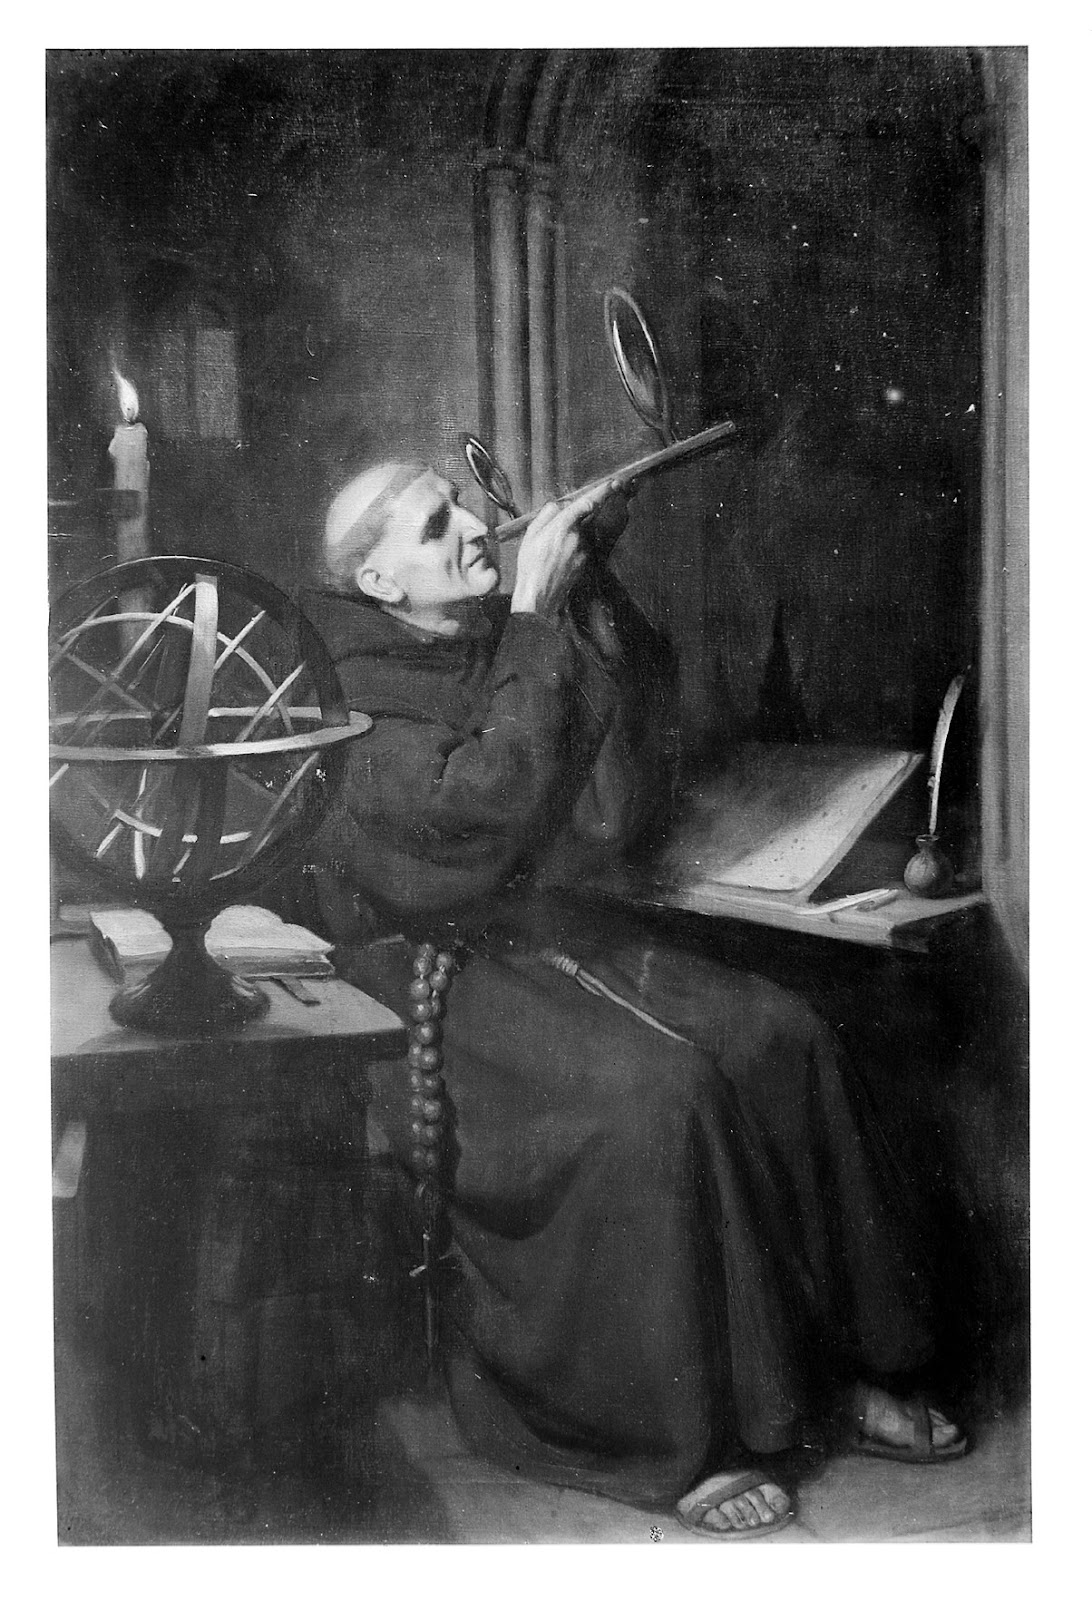 https://upload.wikimedia.org/wikipedia/commons/5/52/Roger_Bacon_in_his_observatory_at_Merton_College,_Oxford._Oi_Wellcome_M0001840.jpg